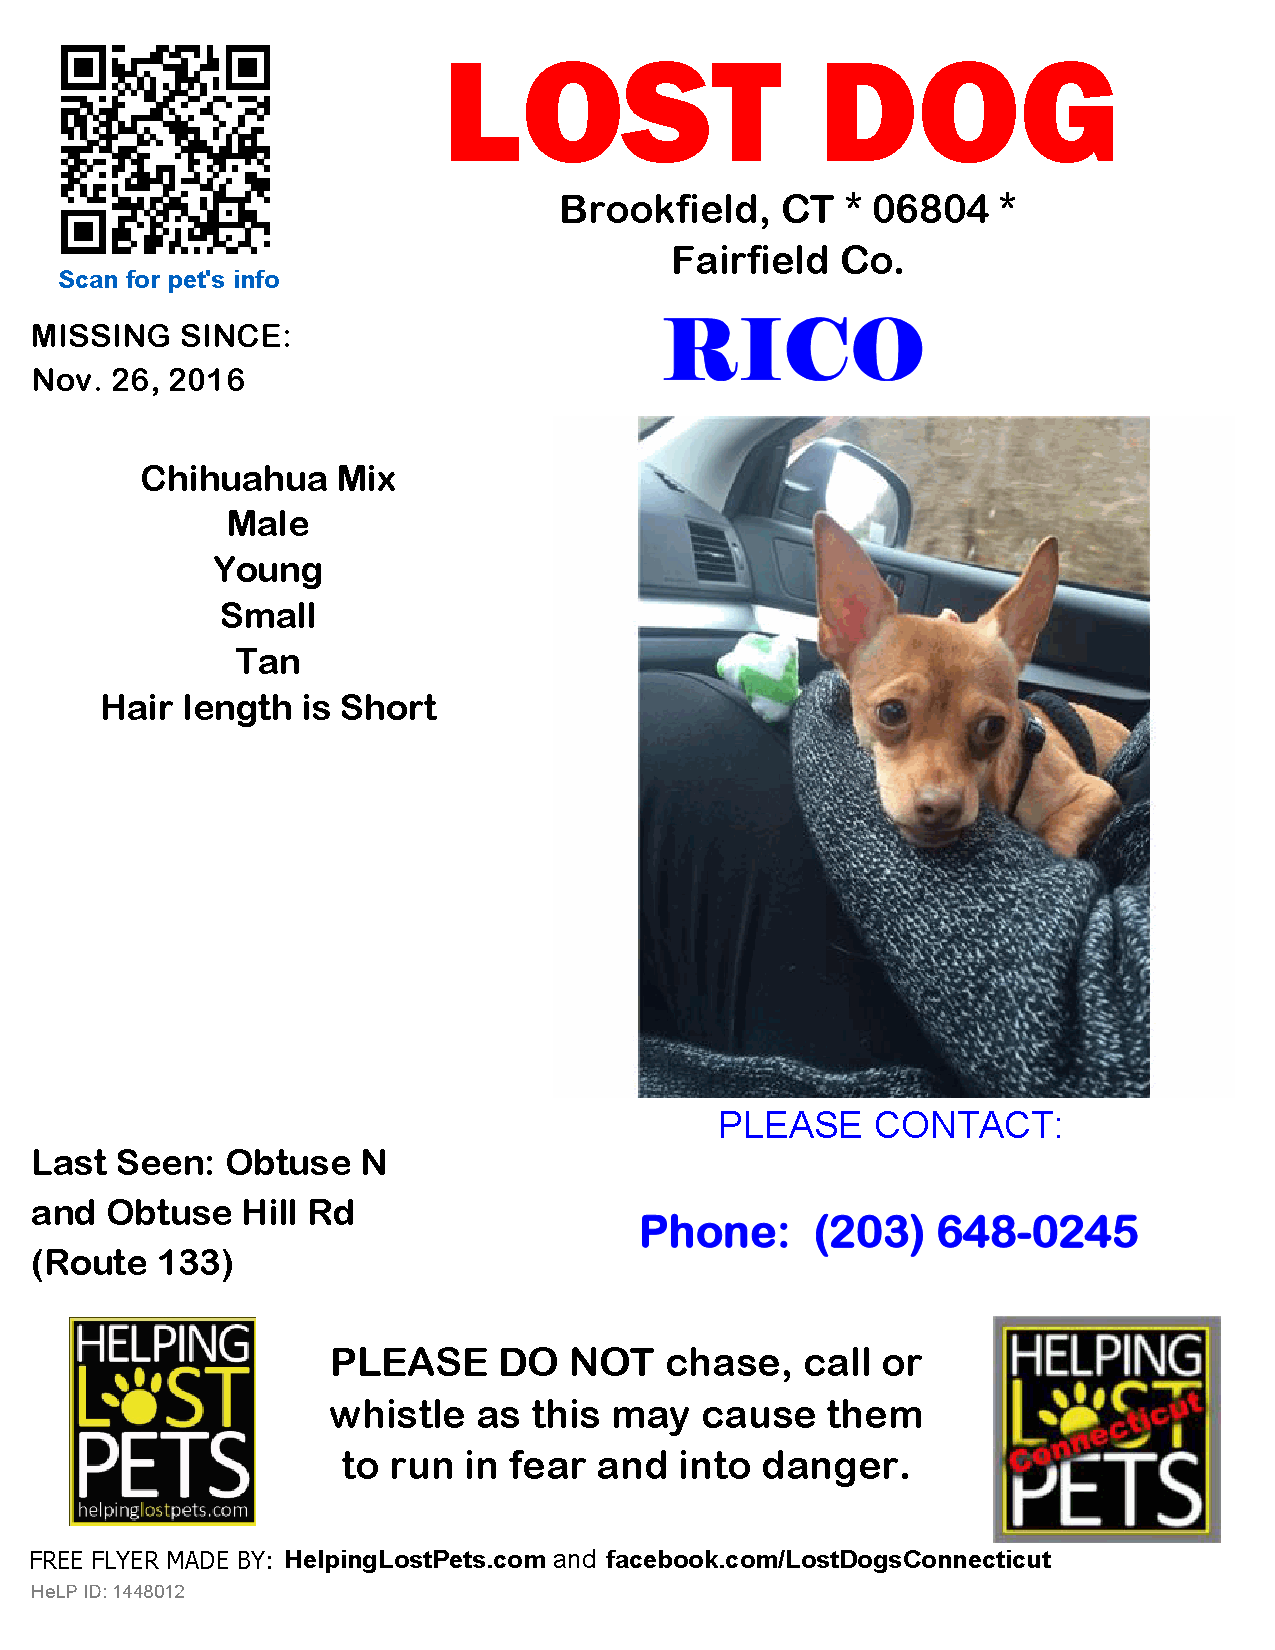 Lost Dogs Connecticut Published By Jessica Goddard Page Liked 7 Hrs Lost Dog Brookfield Ct Chihuahua Mix No Losing A Dog Chihuahua Mix Brookfield